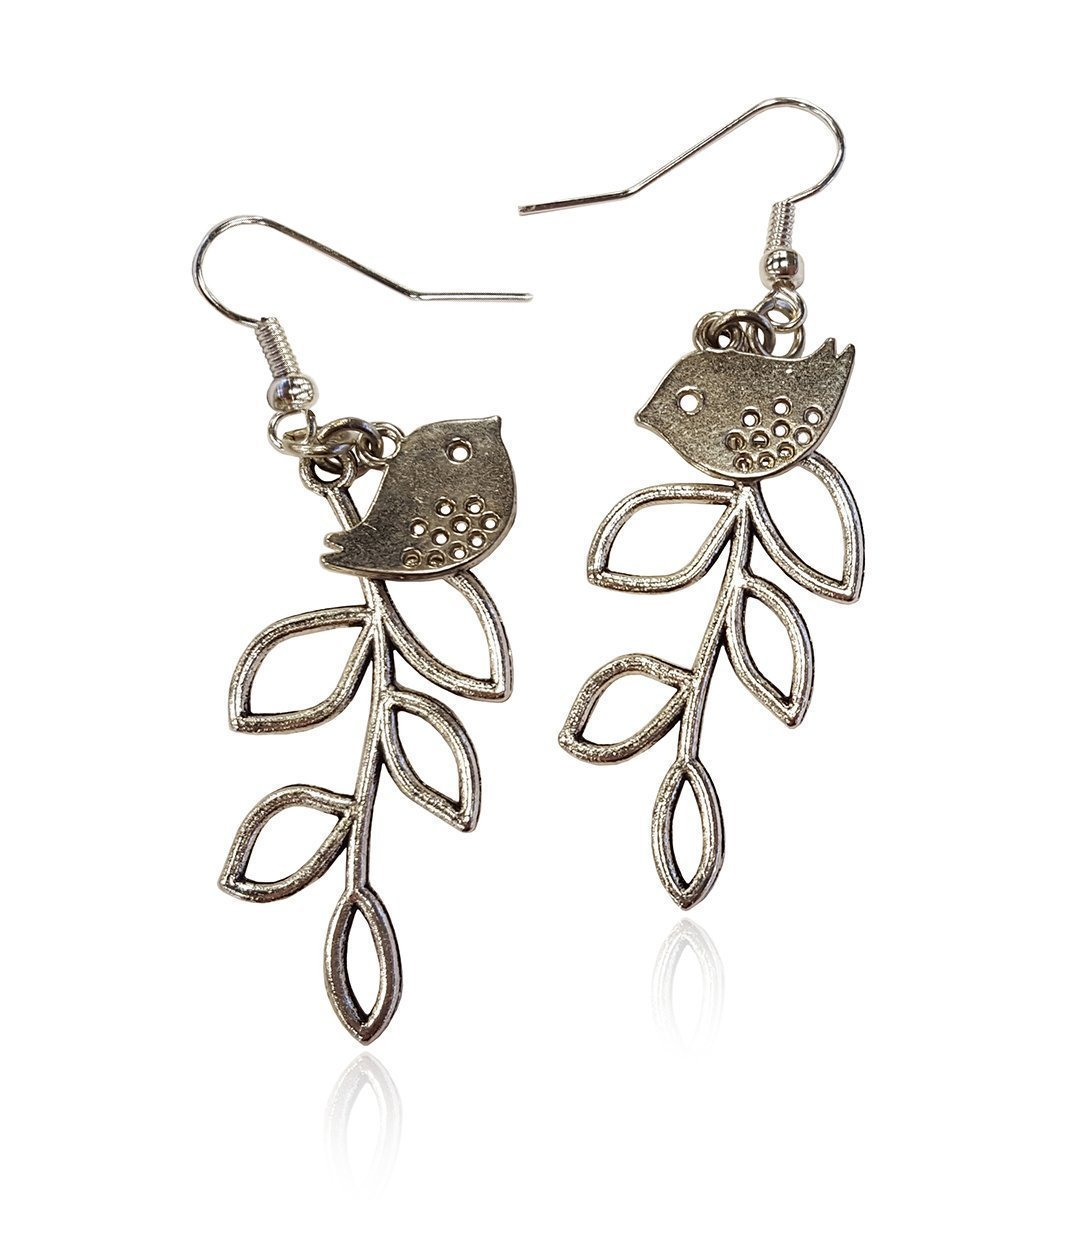 Bird and Branch Unique Tree Leaf Earrings, Silvertone Statement Fishhook Dangle Women's Earring Set